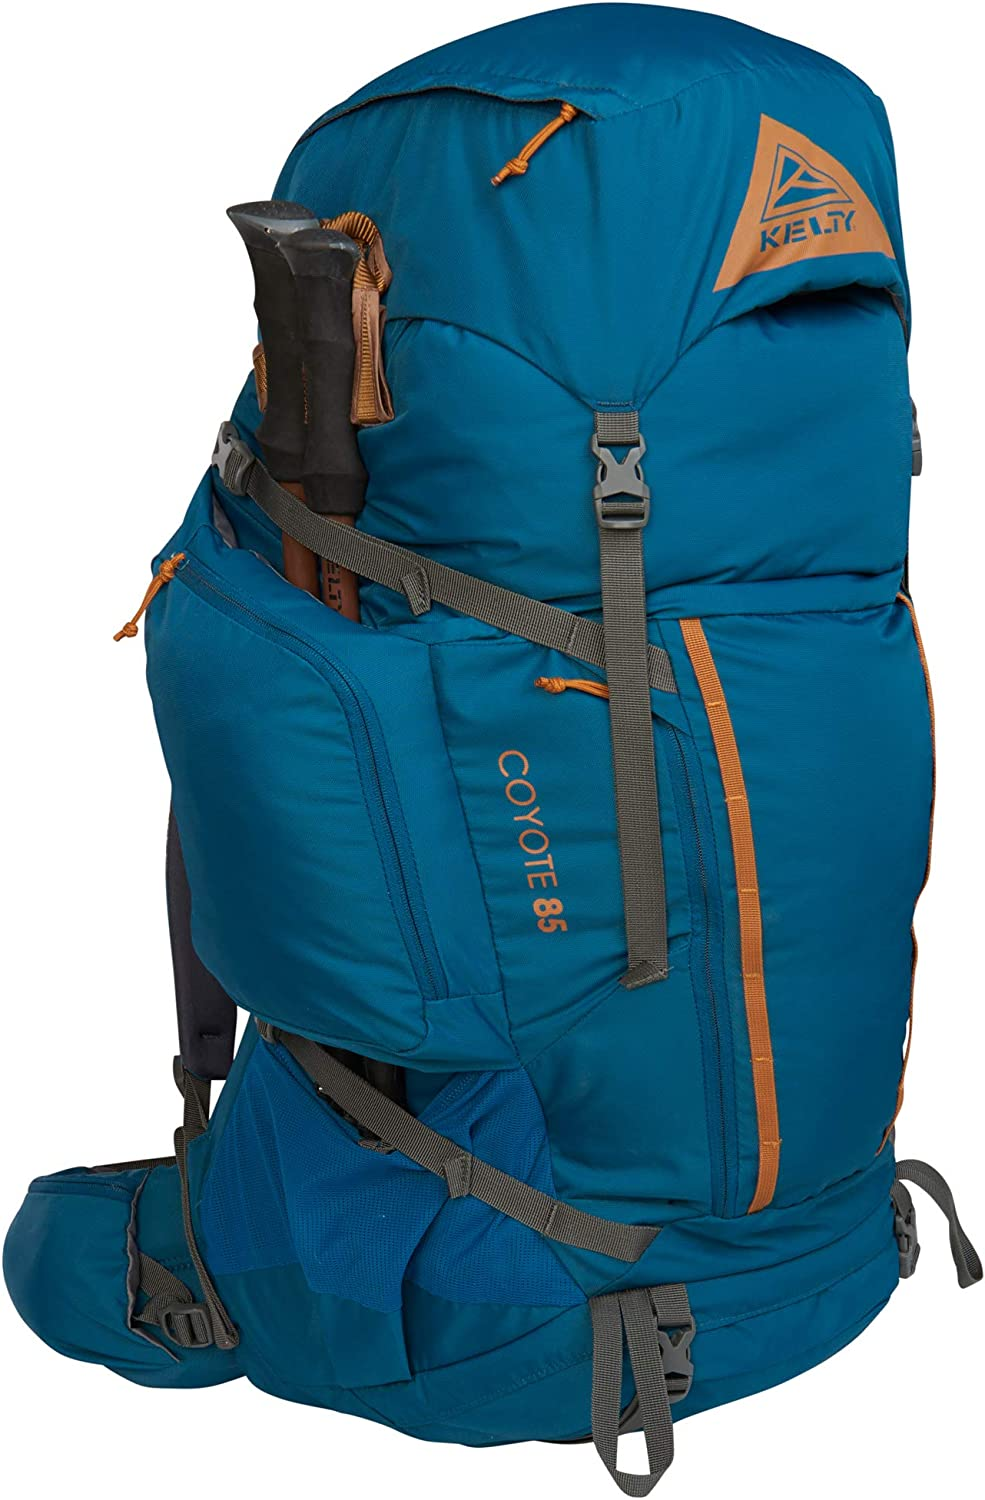 Travel Backpack Kelty Coyote 60-105 Liter Backpack - Hiking 2020 Update Mens and Womens Backpacking